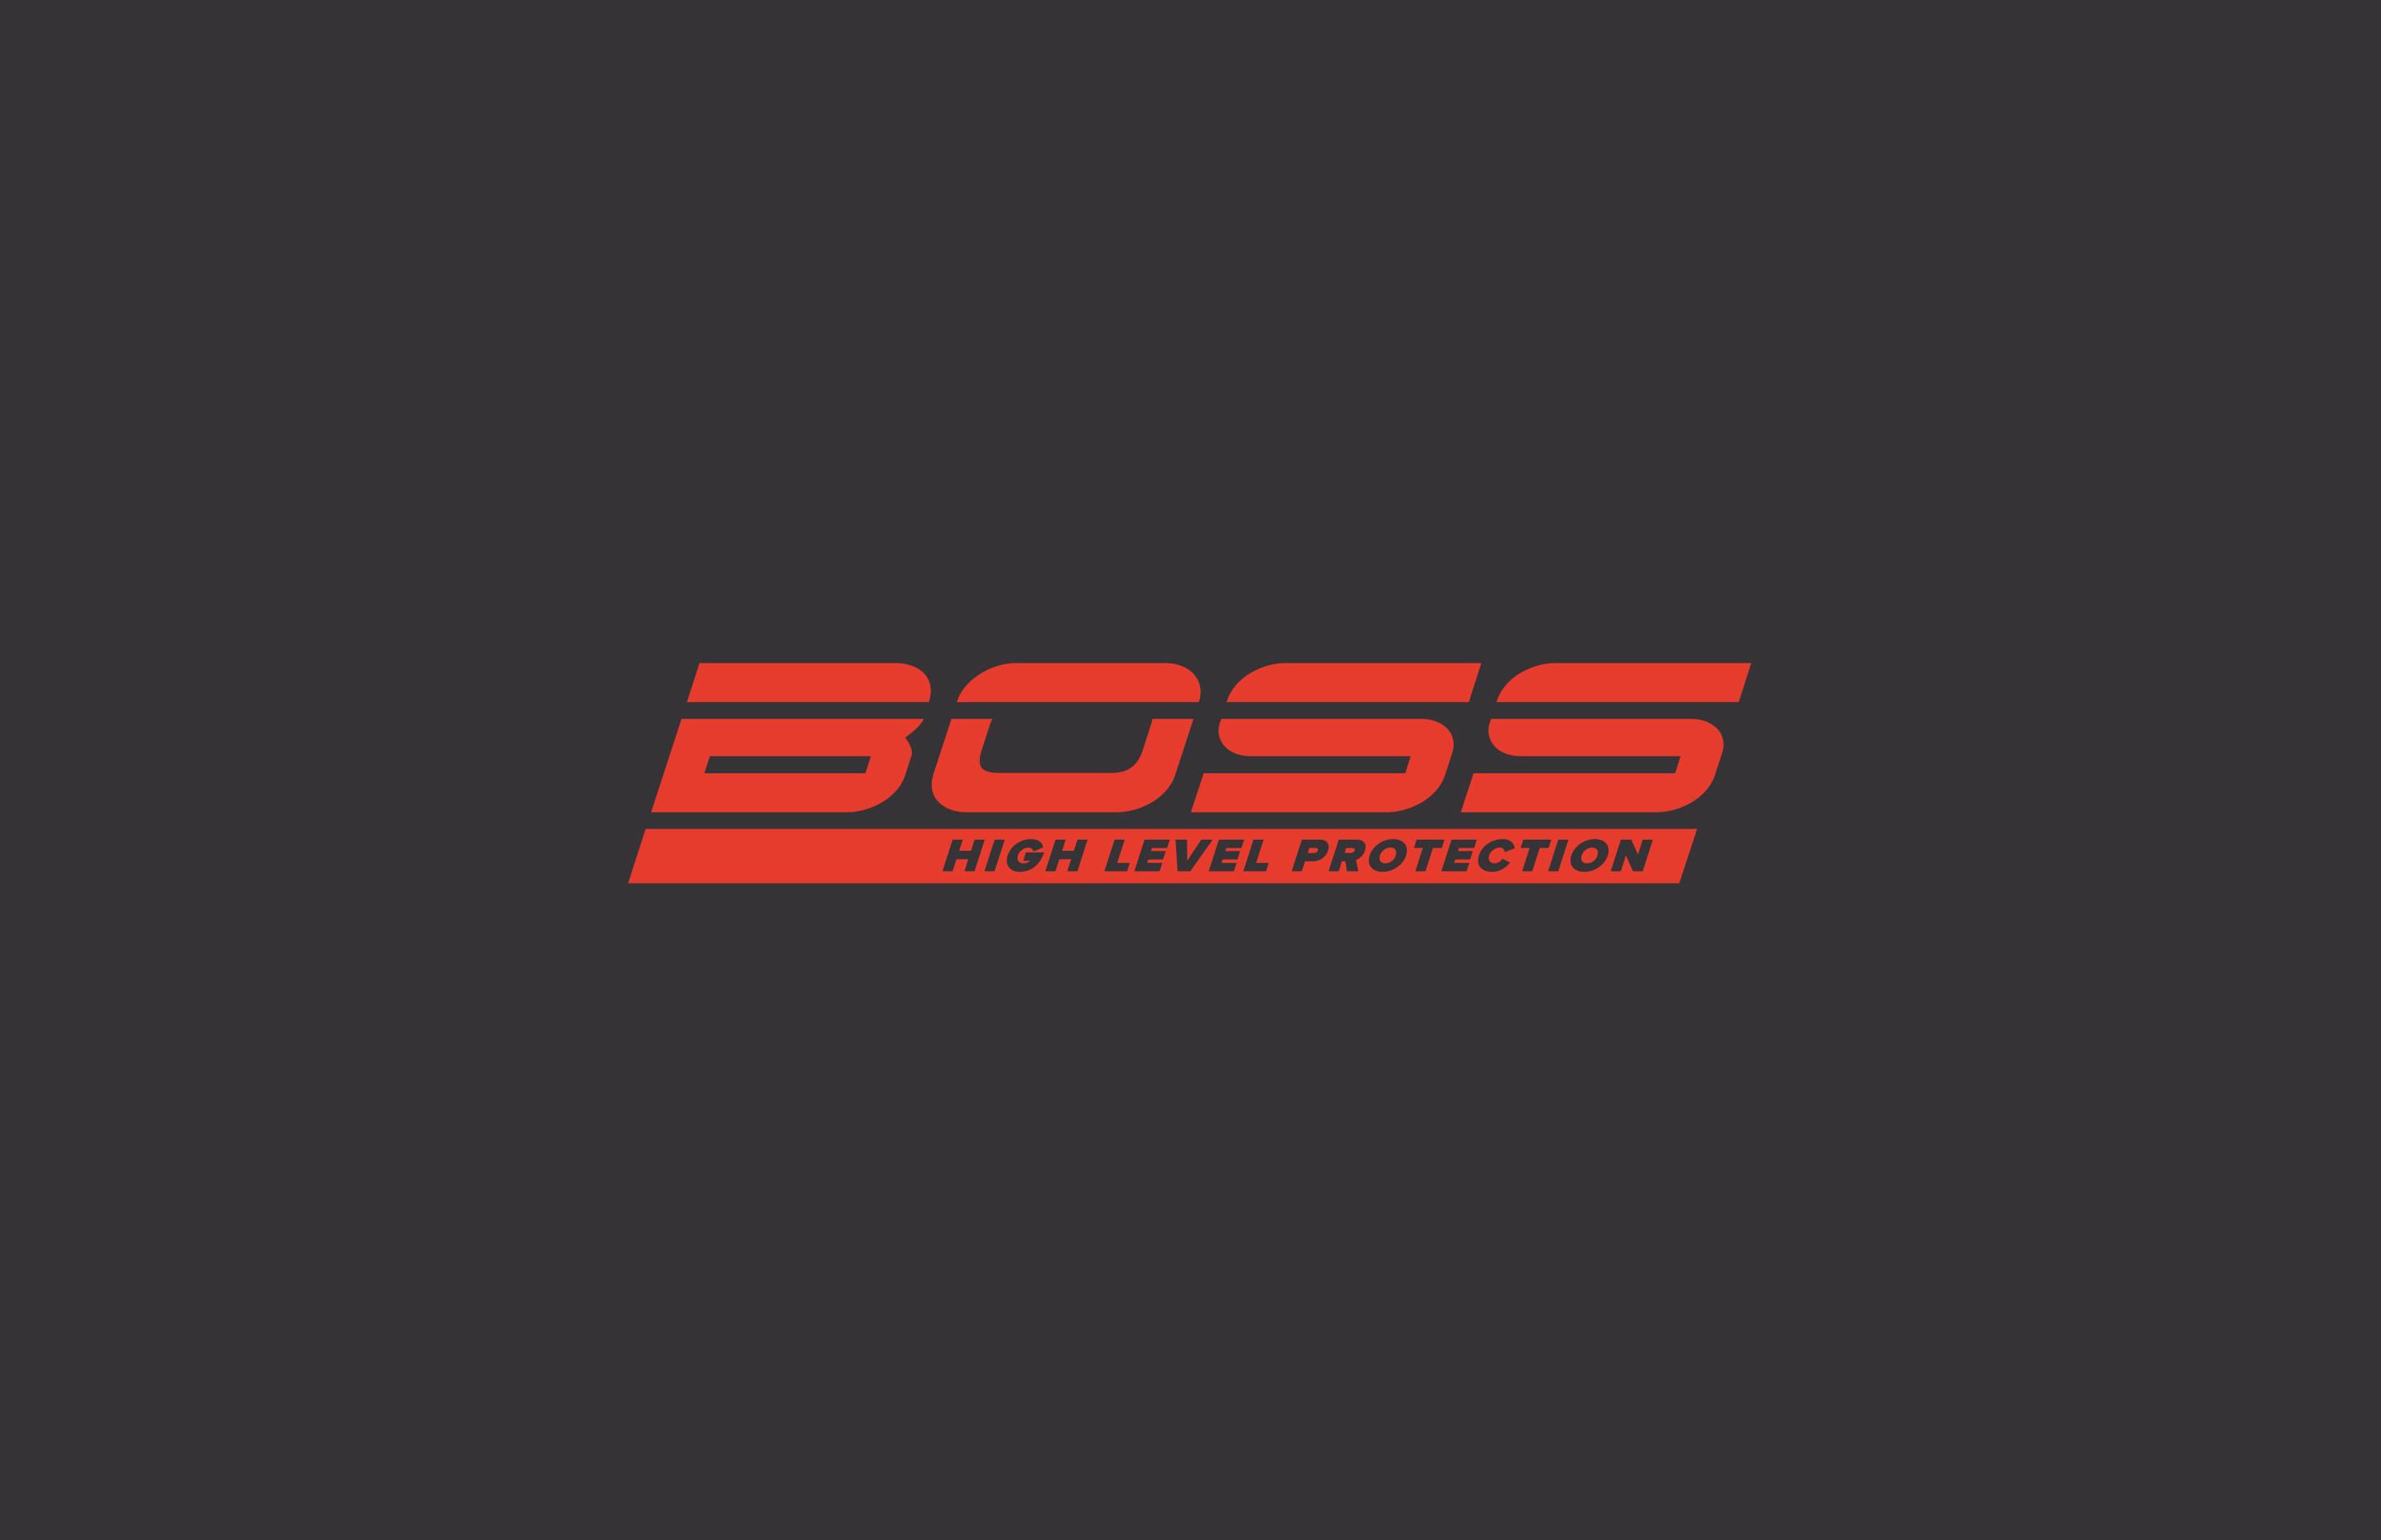 Boss High Level Protection